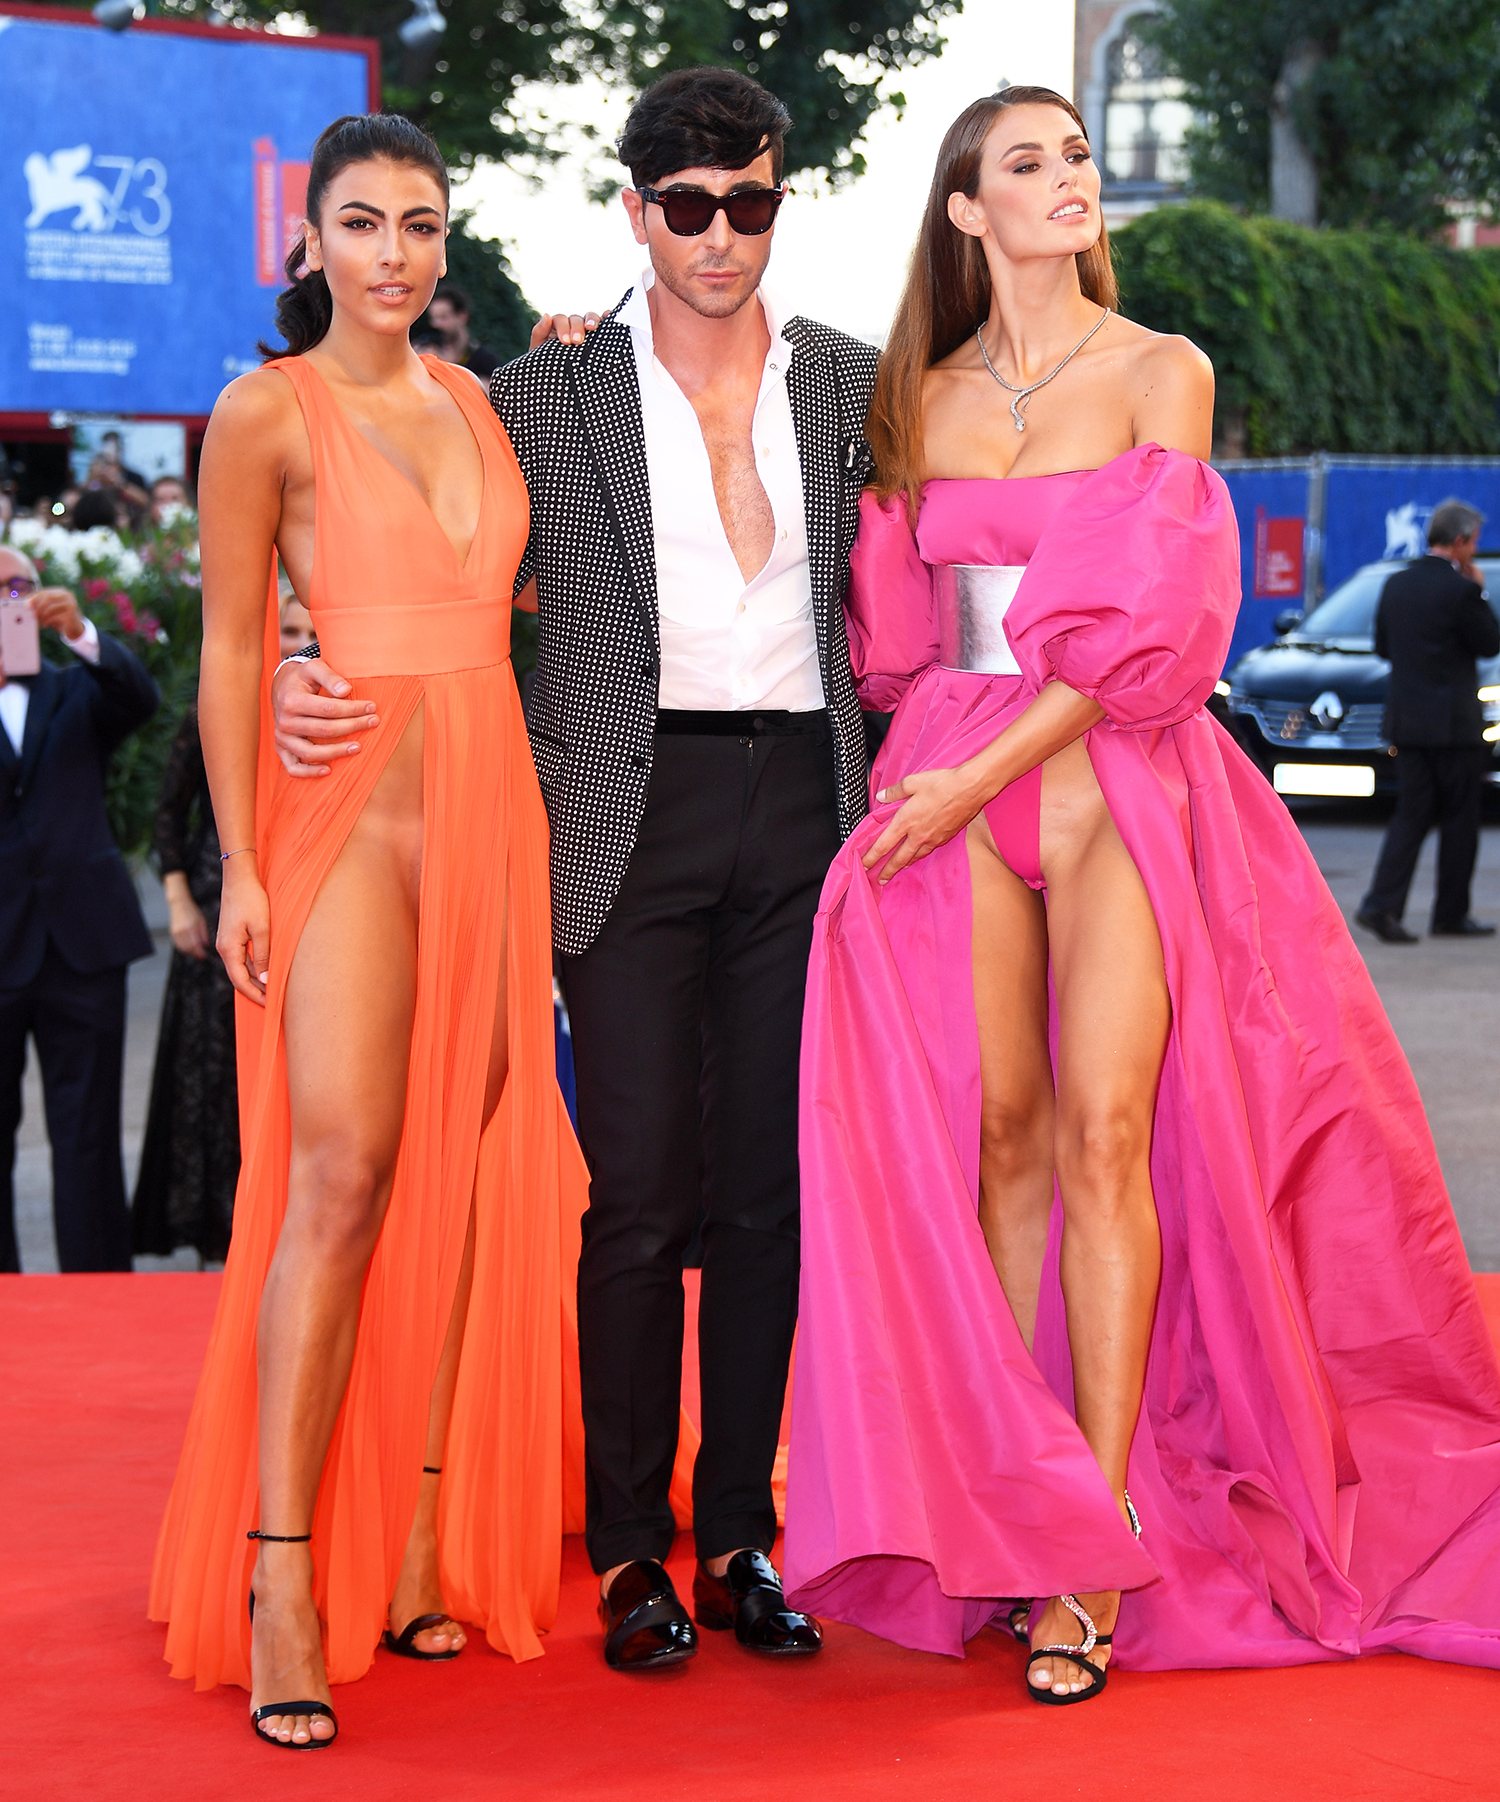 Dayane Mello, Matteo Manzini and Giulia Salemi attend the premiere of 'The Young Pope' during the 73rd Venice Film Festival at Palazzo del Casino on September 3, 2016 in Venice, Italy.